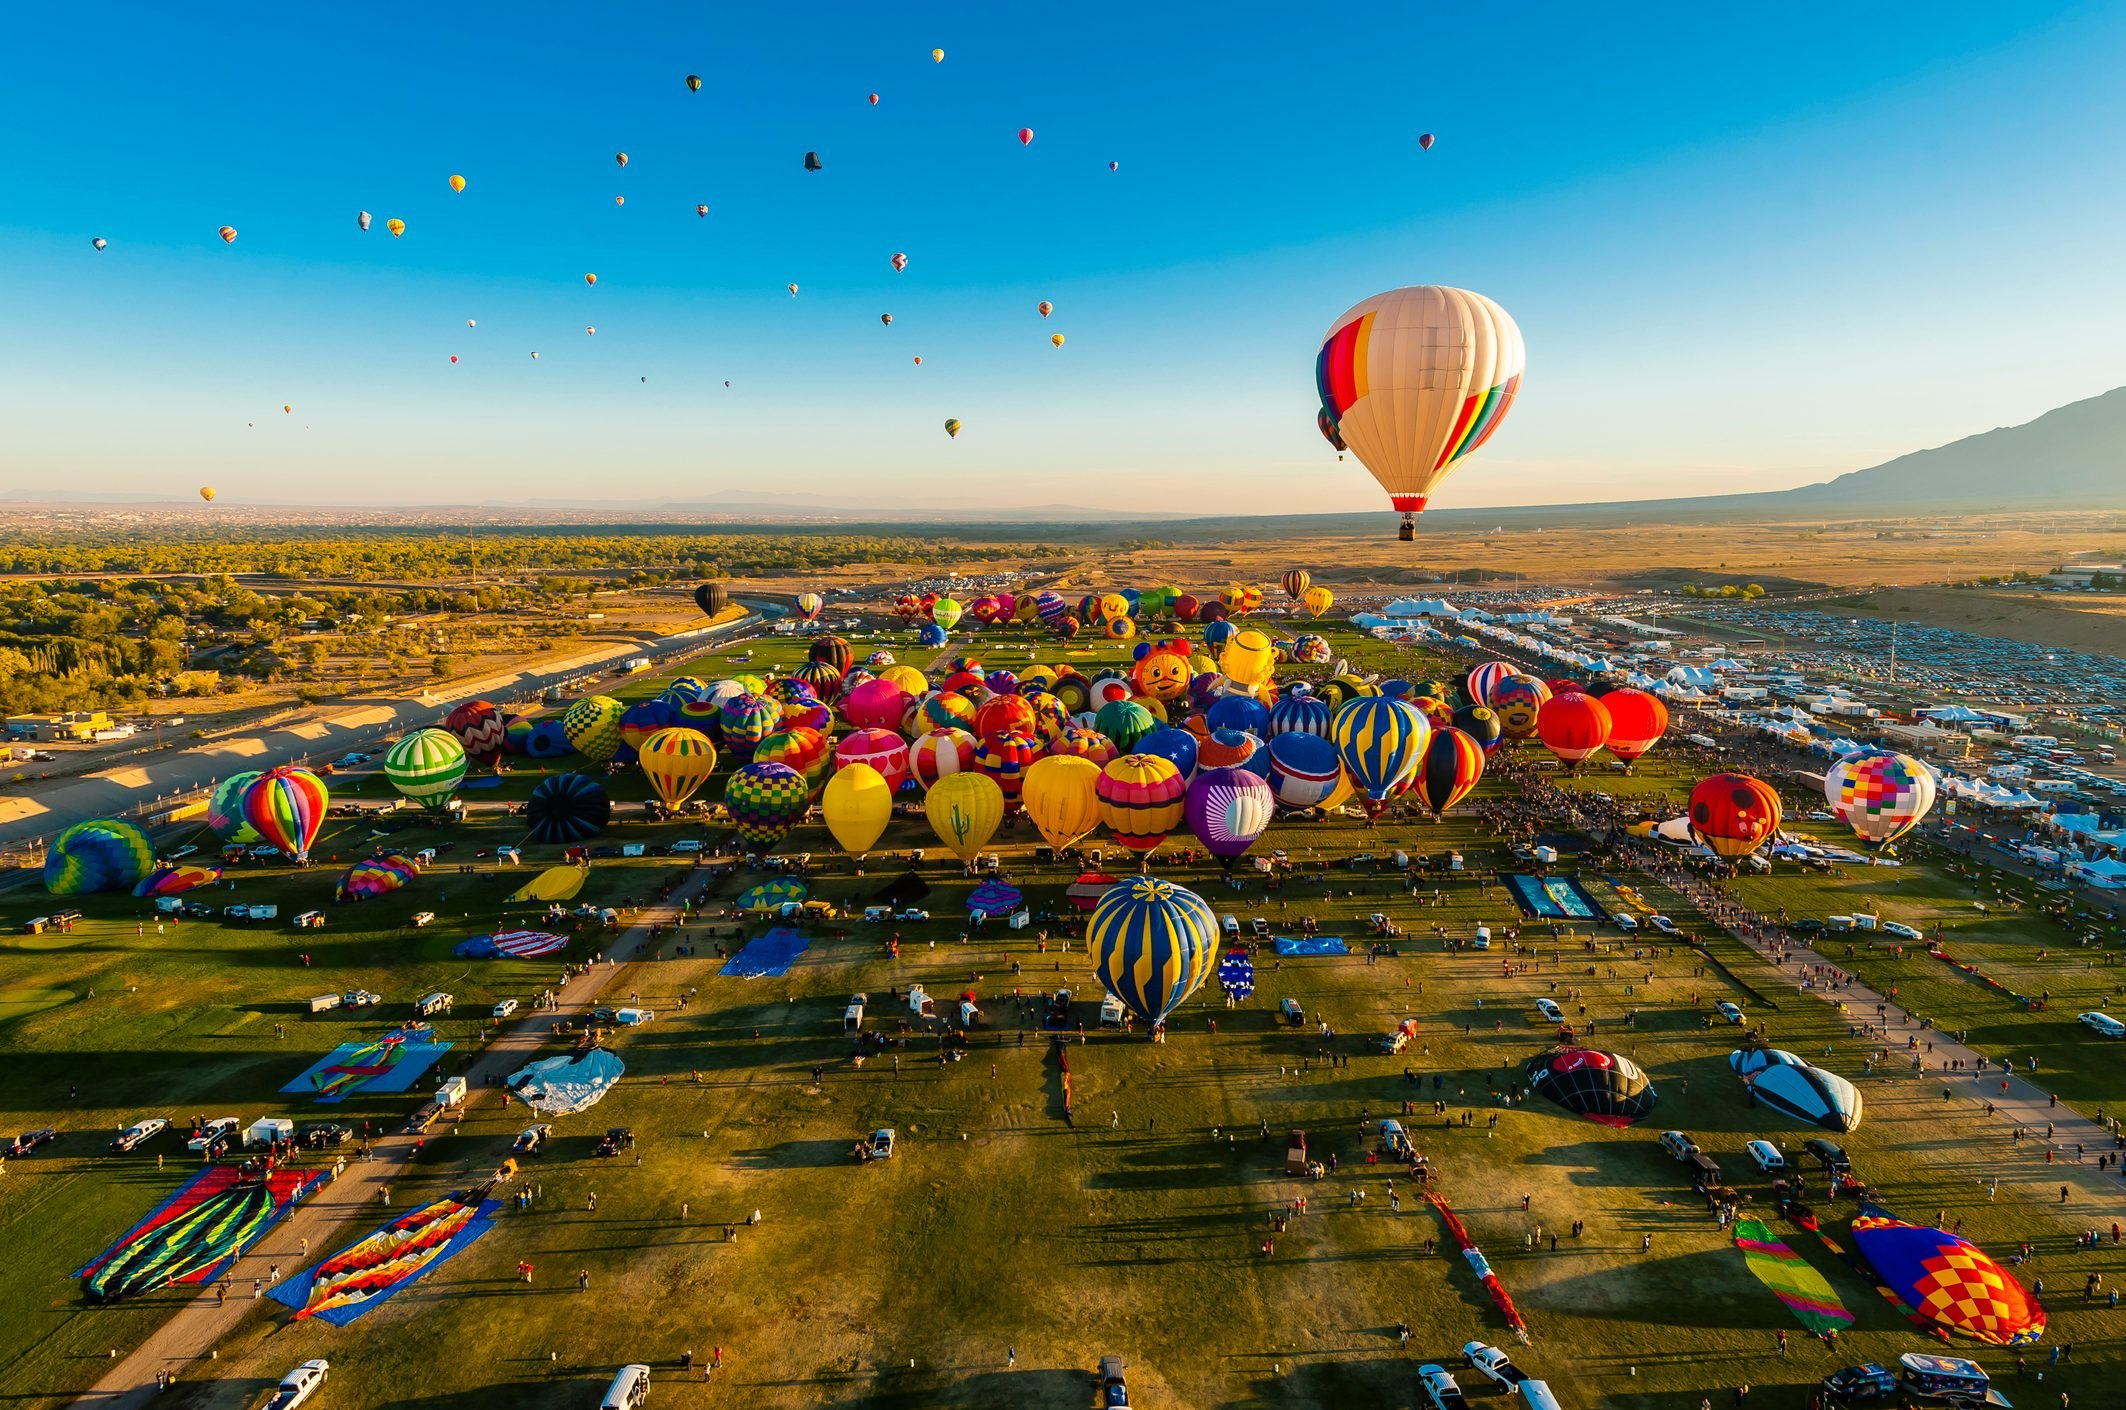 Aerial view, Hot air balloons lifting off from Balloon Fiesta Park,